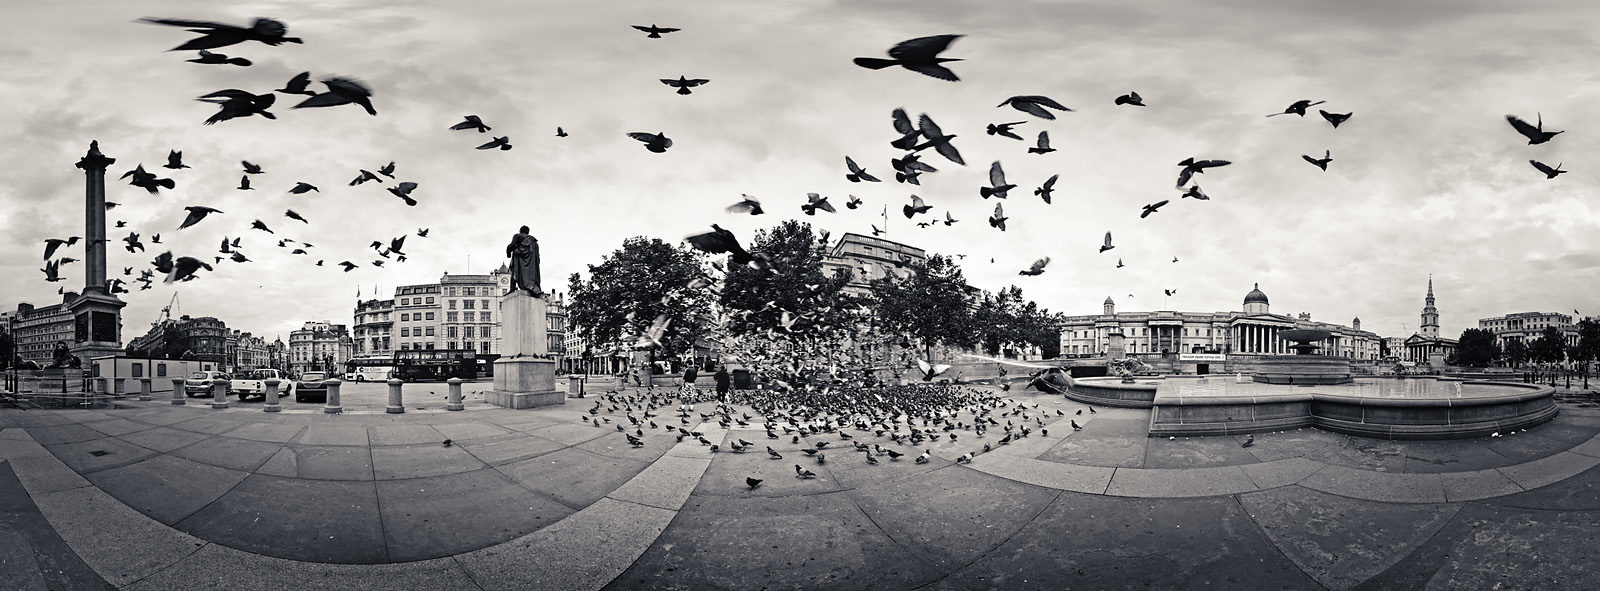 The Birds Acrylic - London Black & White Fine Art Photo